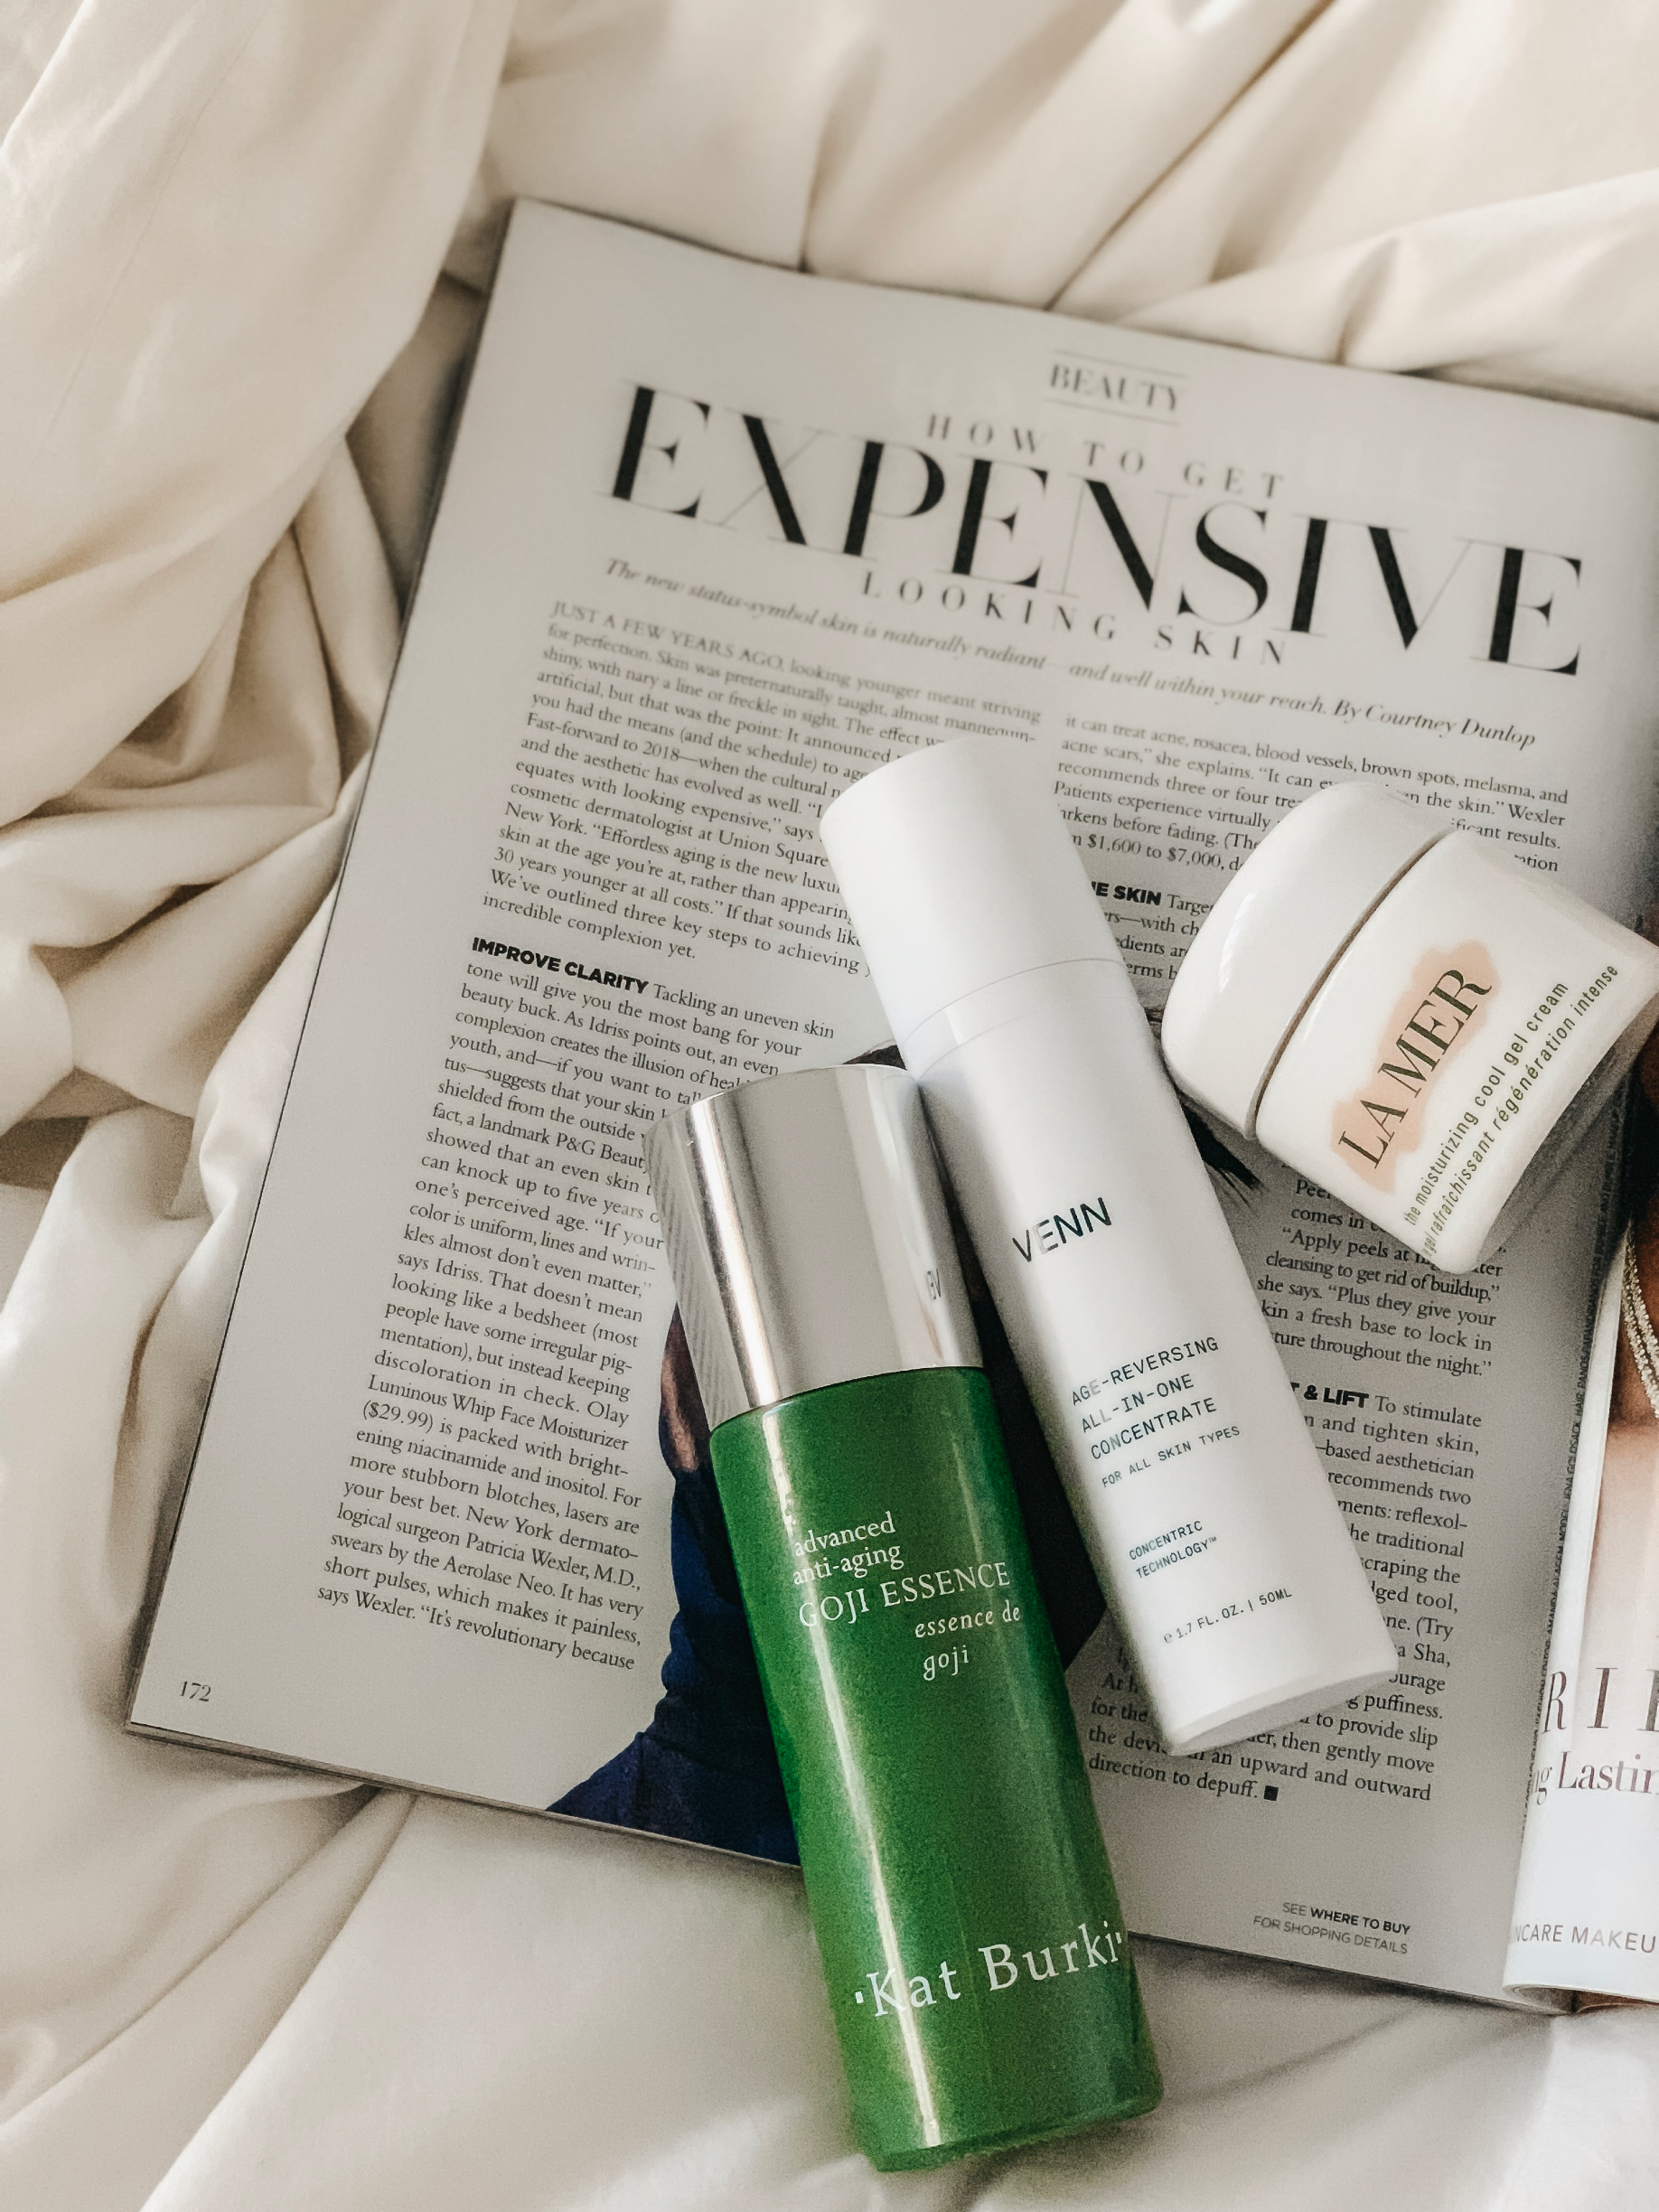 what are my thoughts on getting expensive looking skin? - Use of anti-aging creams & products that fight age and leave your skin refreshed and youthful (regardless of your age).